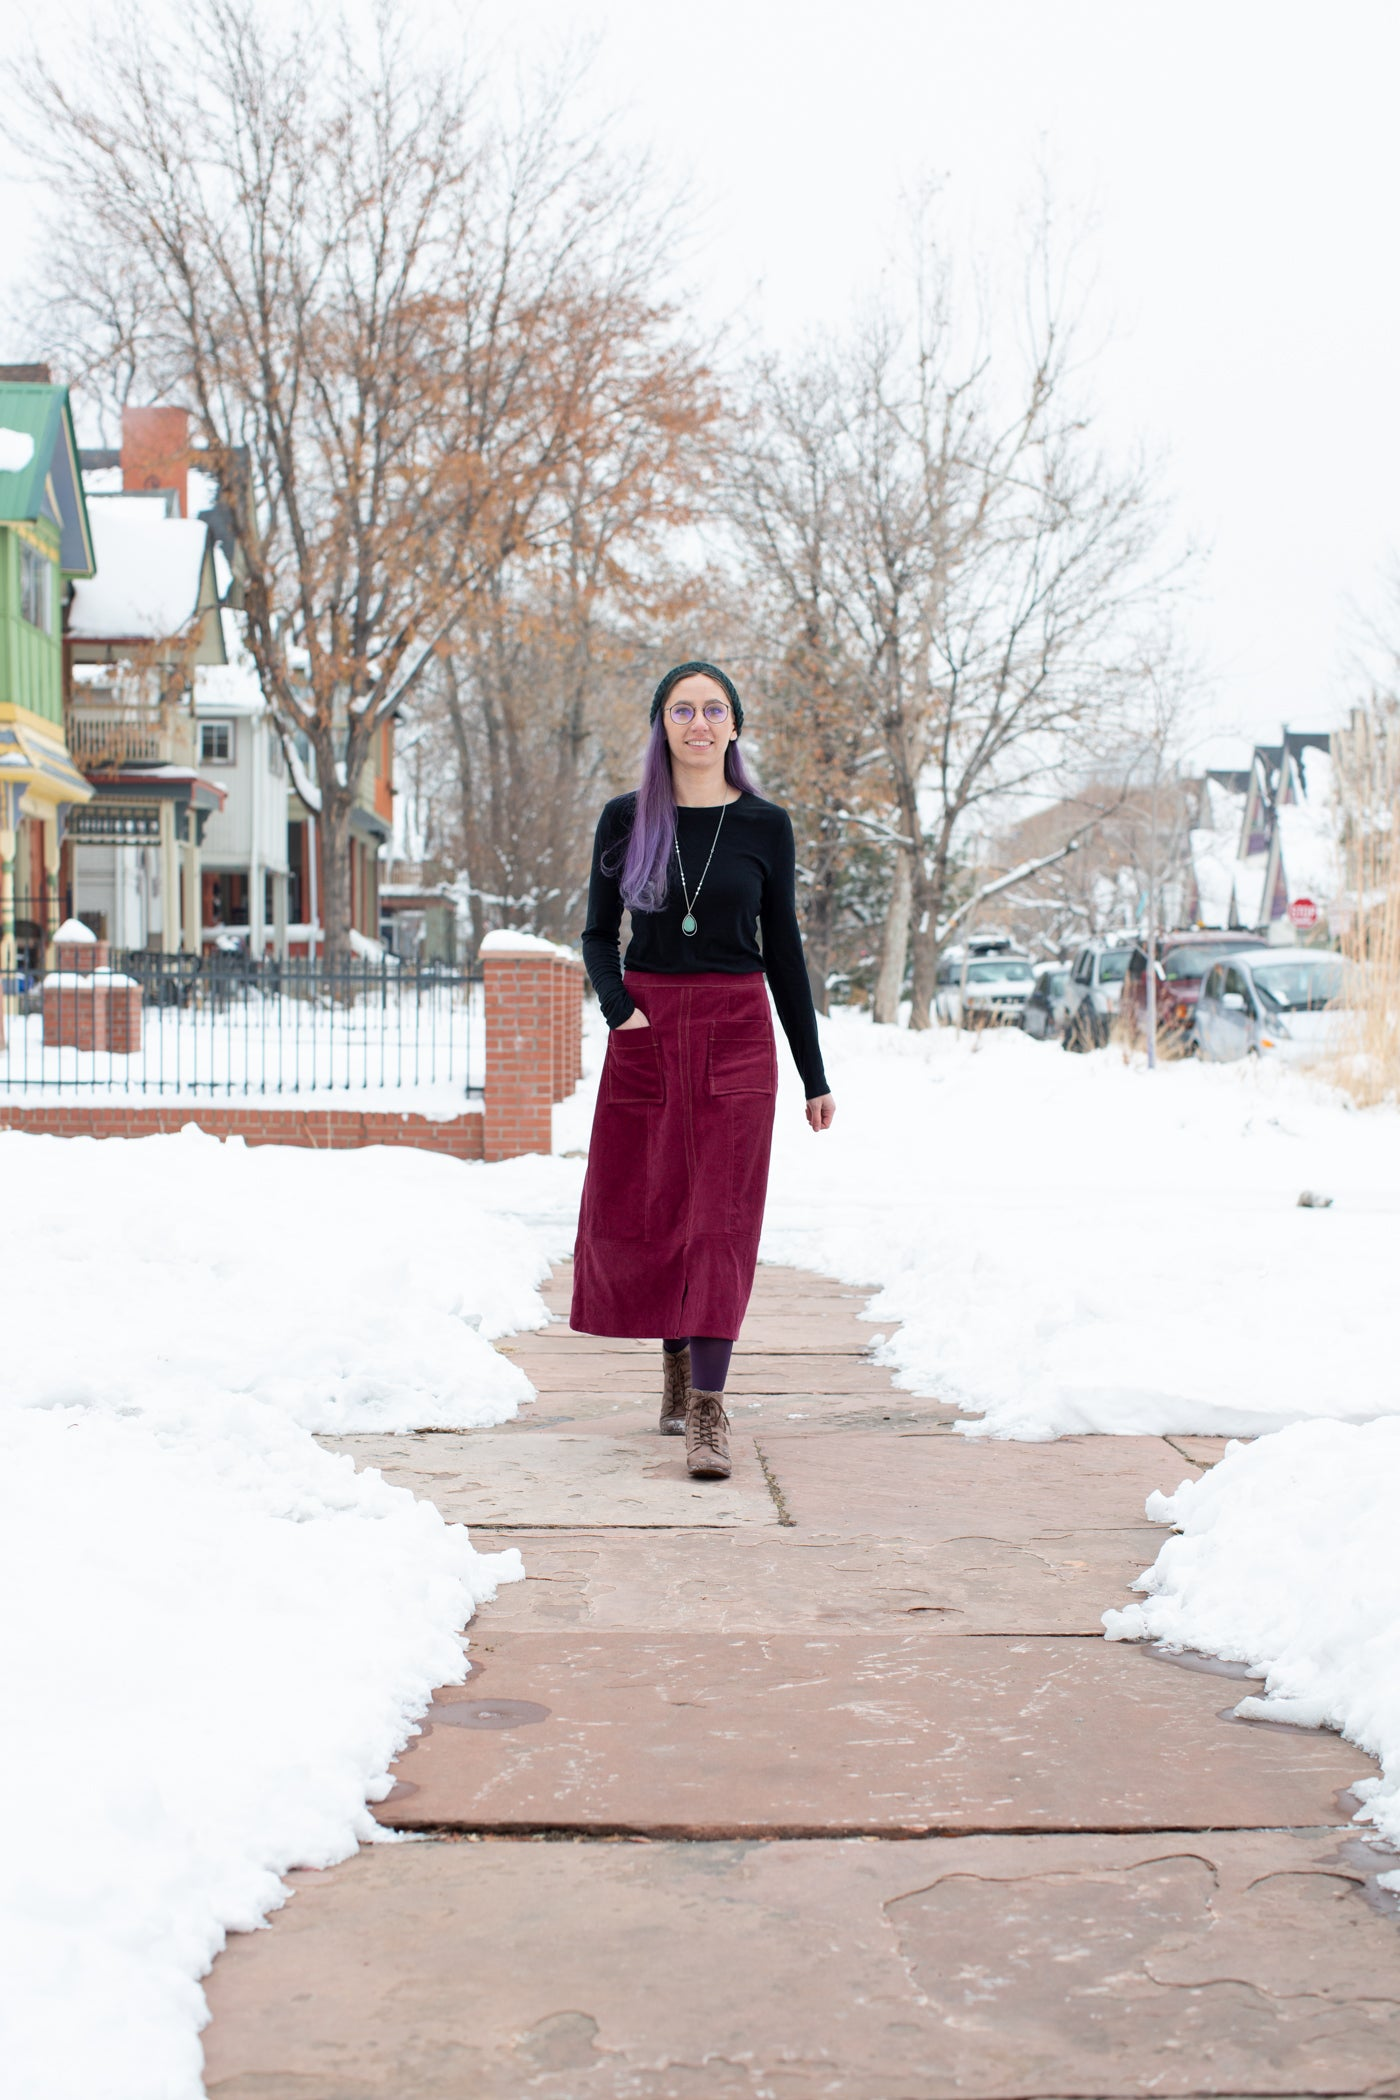 Aly is walking down a city sidewalk, with snow on both sides of the sidewalk.  Aly is wearing a Robert Kaufman Corduroy skirt in merlot with a black long sleeve top.